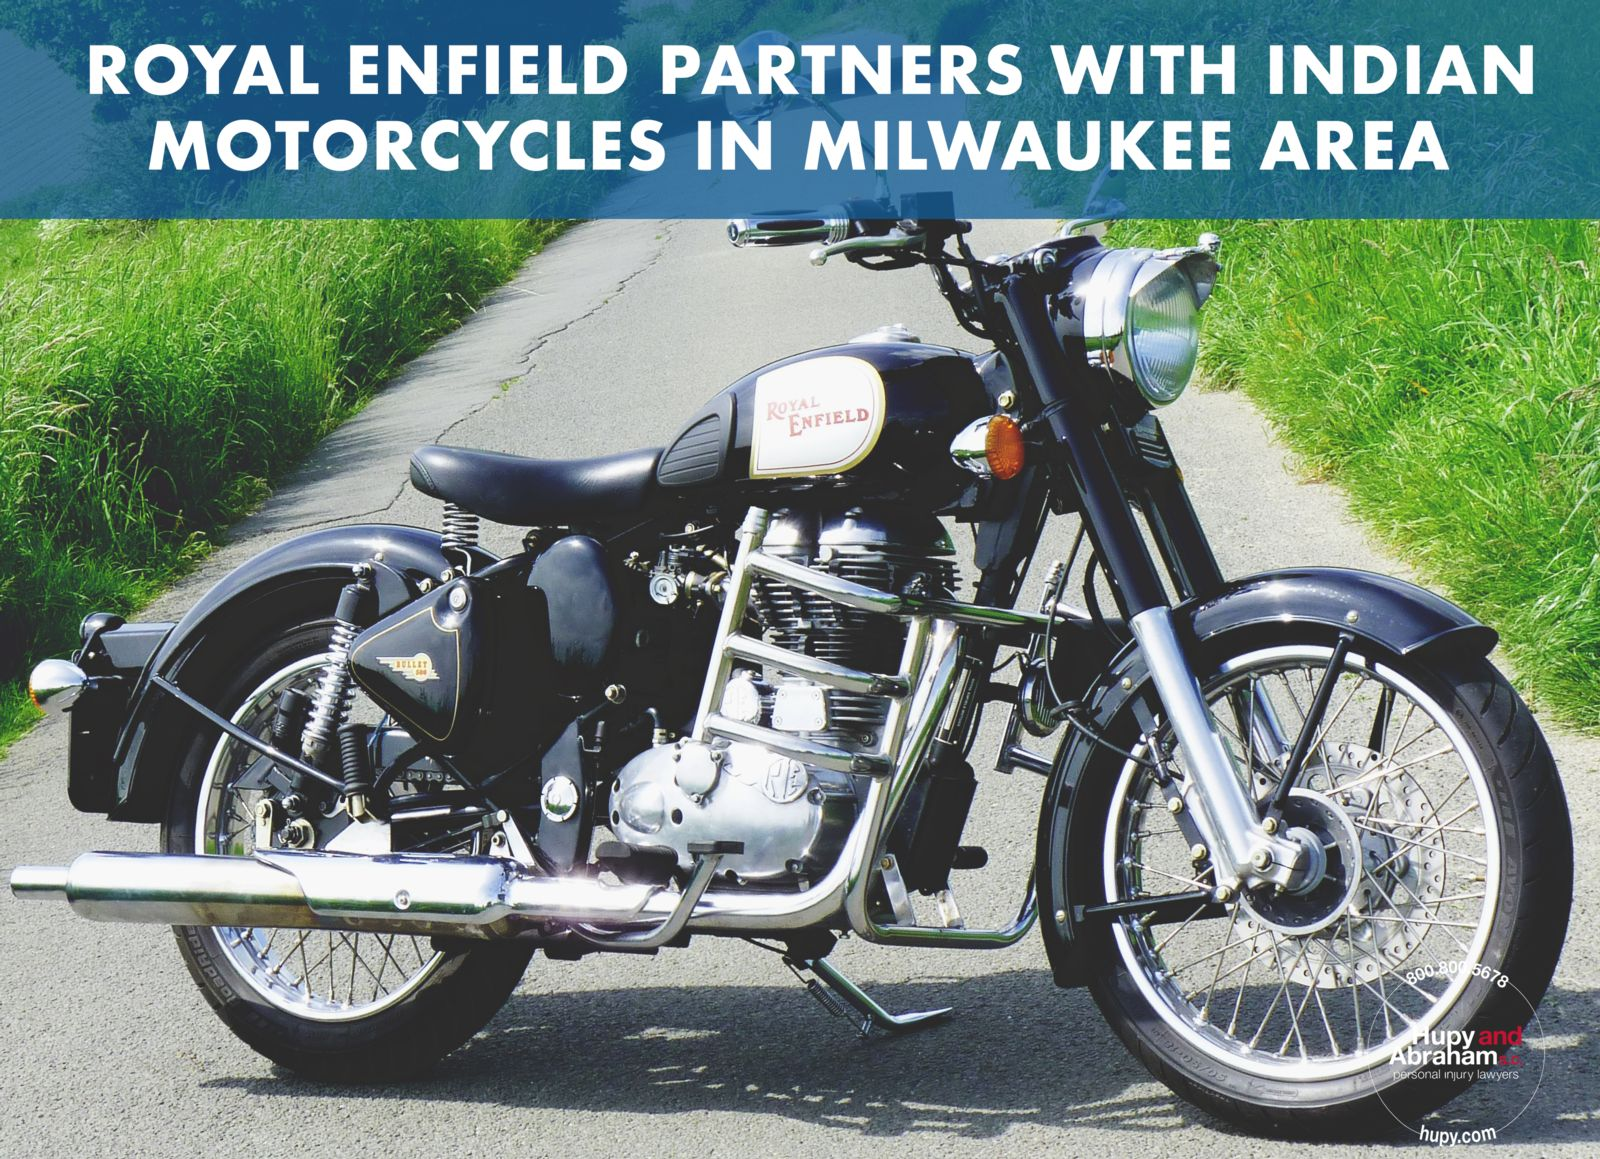 Royal Enfield Partners With Indian Motorcycles In Milwaukee Area